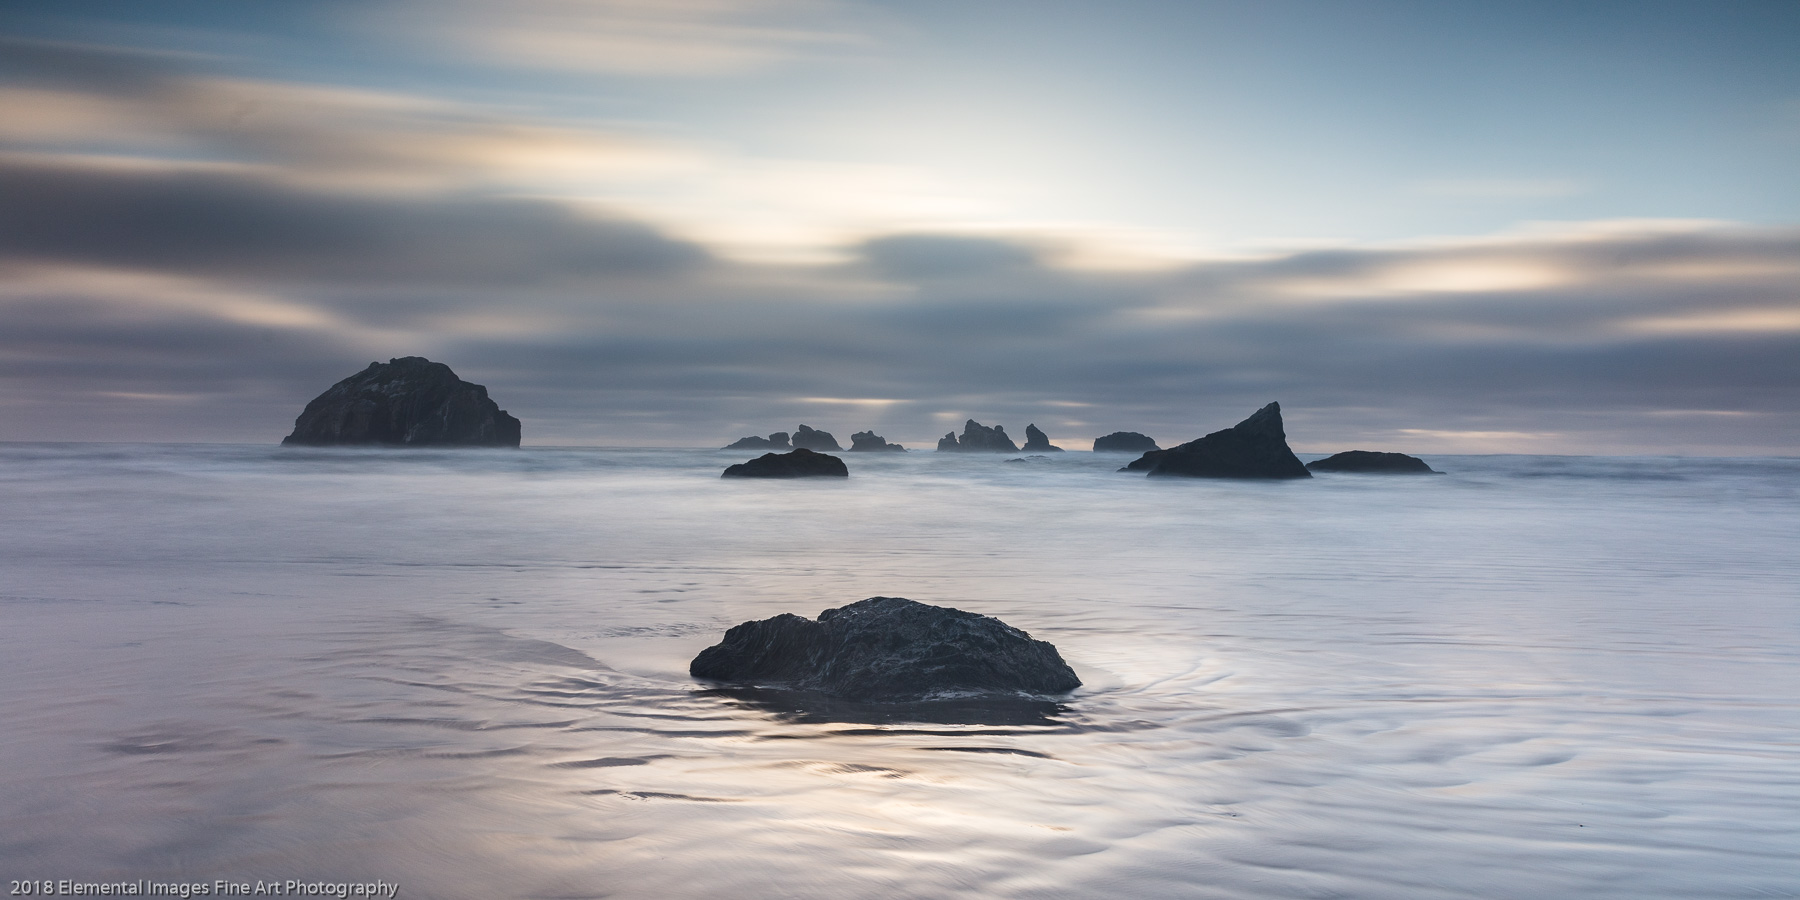 Face Rock at Dusk | Bandon | OR | USA - © 2018 Elemental Images Fine Art Photography - All Rights Reserved Worldwide